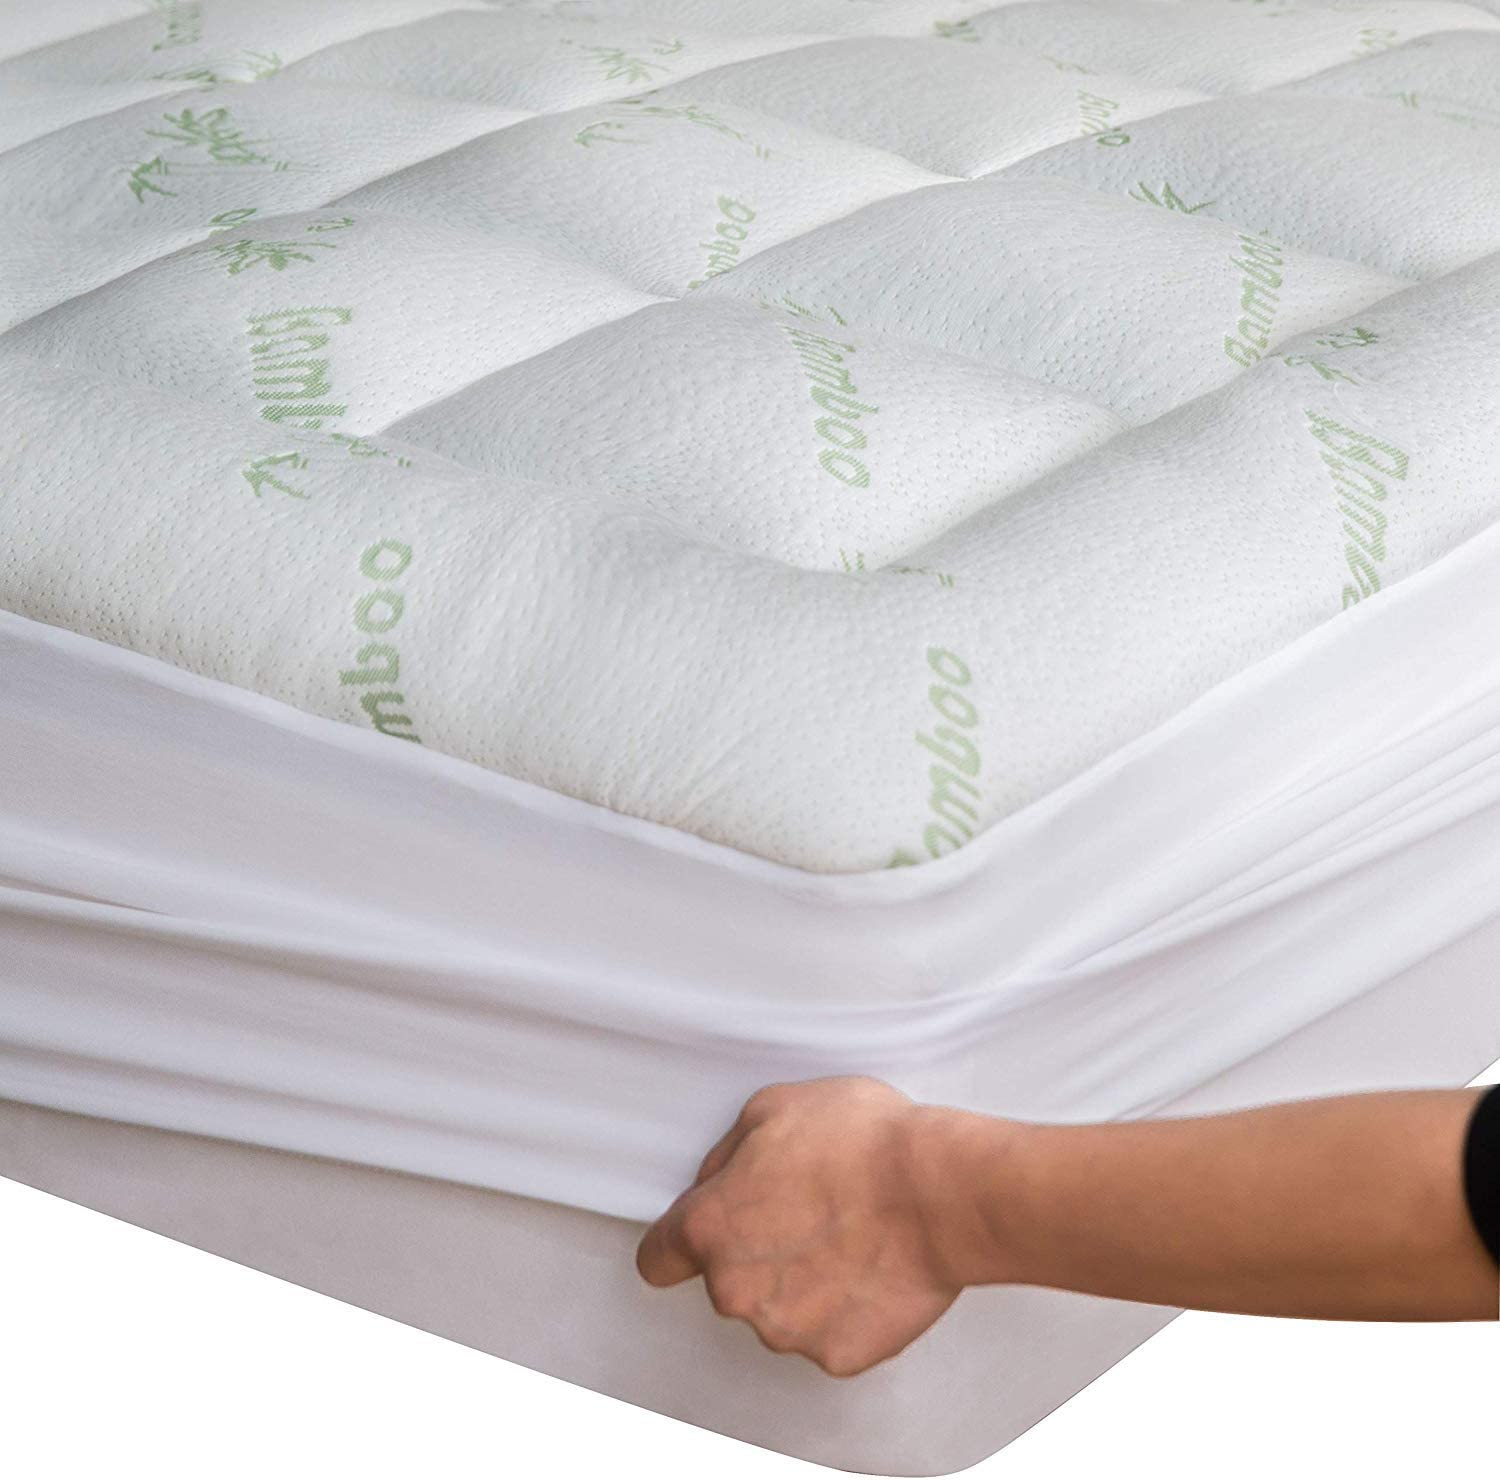 Niagara Sleep Solution Bamboo Mattress Topper Twin Cooling Breathable Extra Plush Thick Fitted 8-21Inches Pillow Top Mattress Pad Rayon Cooling Ultra Soft (Bamboo, Twin)